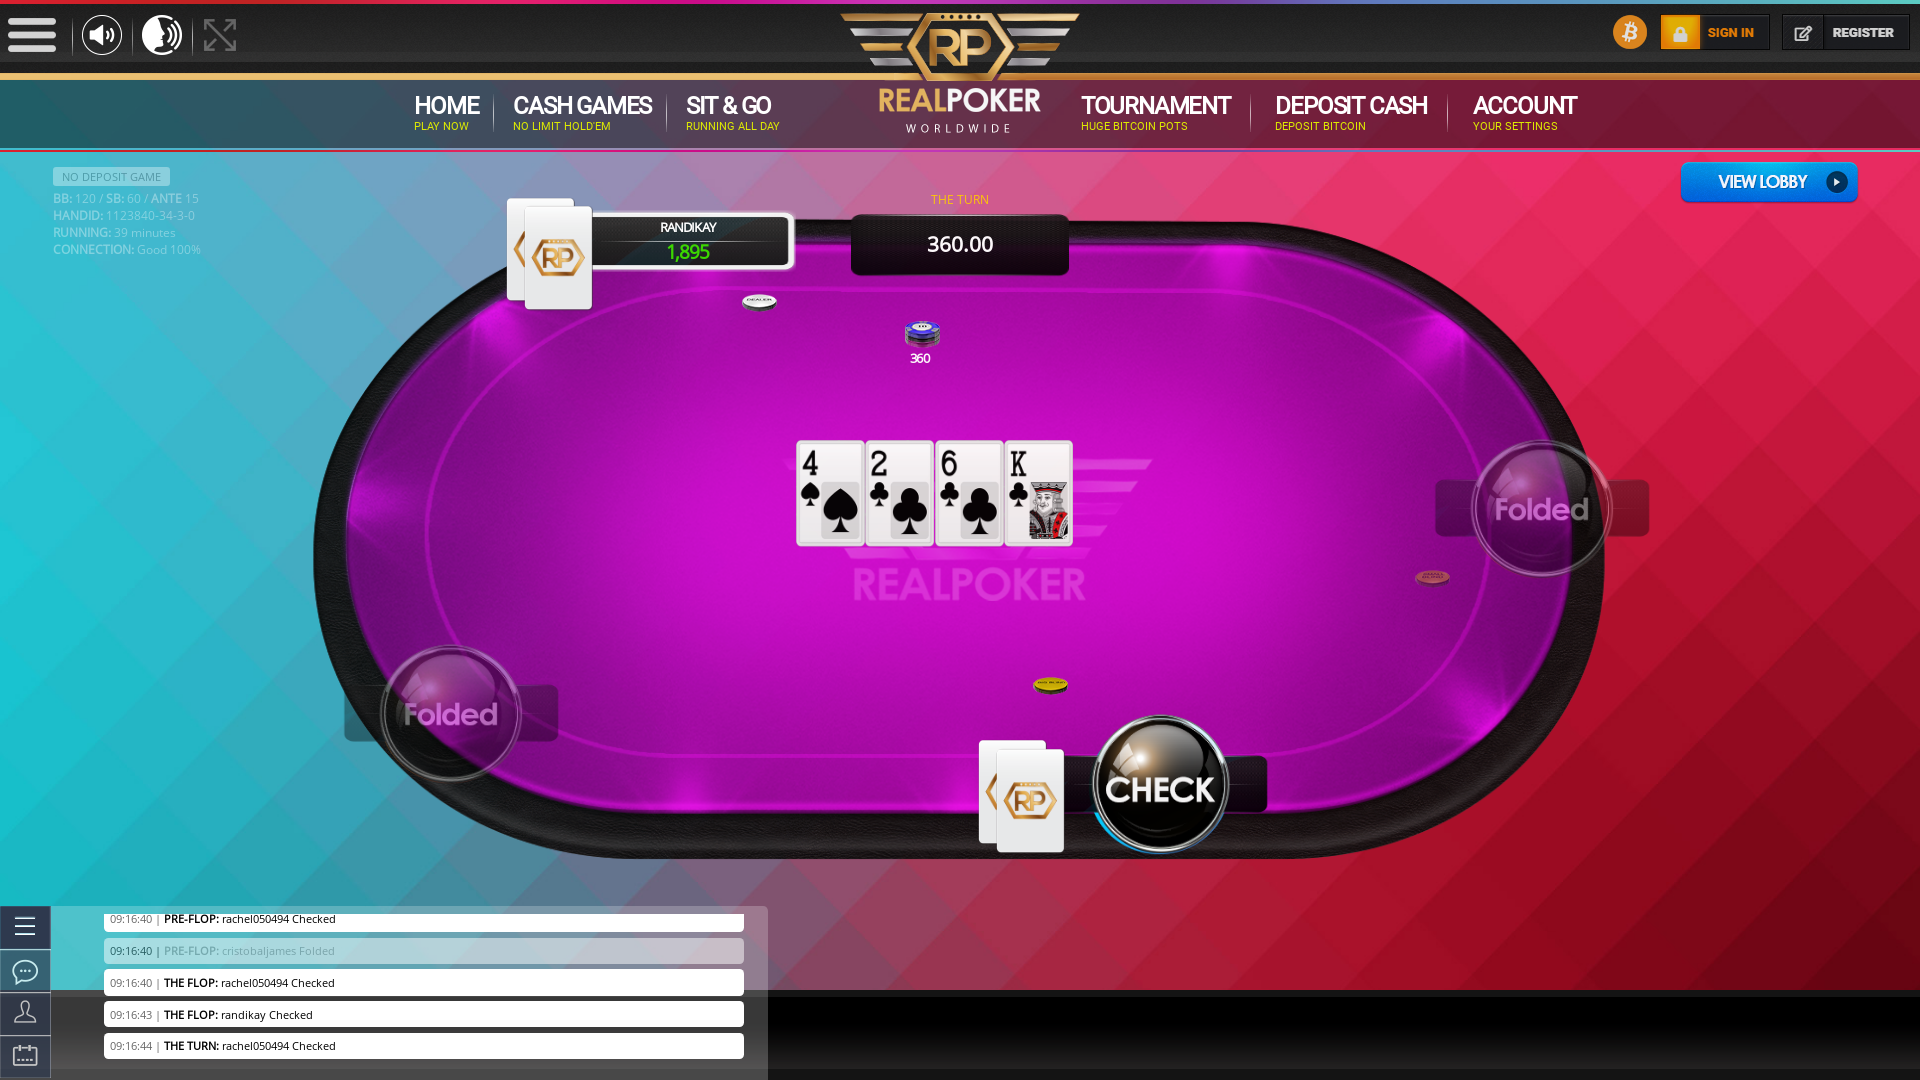 Malta 10 player poker in the 39th minute